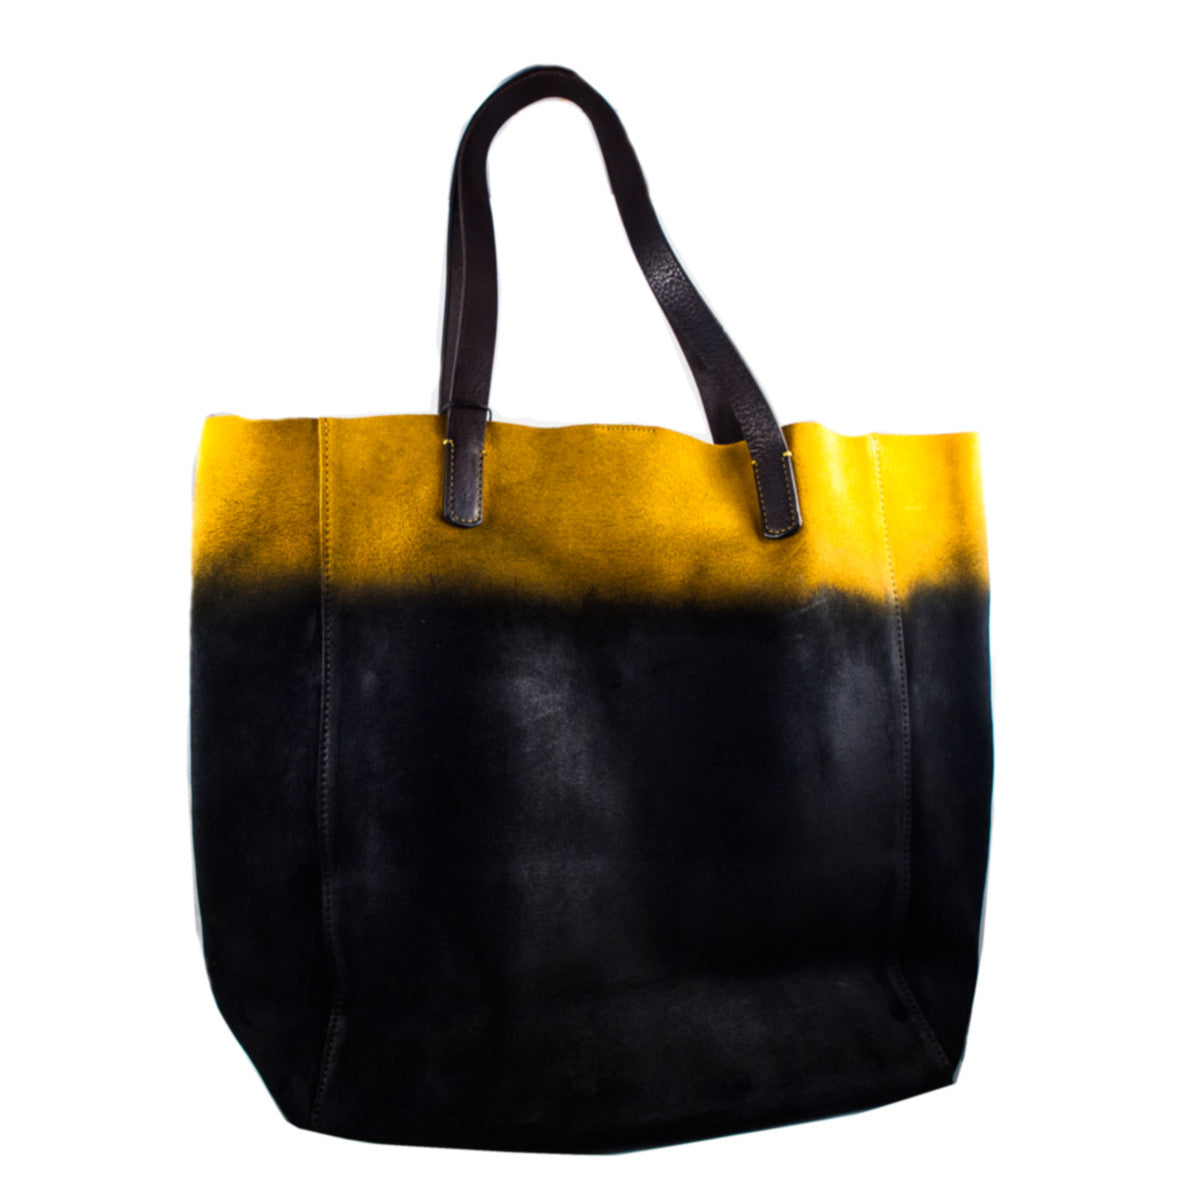 aa0b5b72c3 Massimo Palomba - Painted Suede Shopper - Shop Now! (Massimo Palomba ...